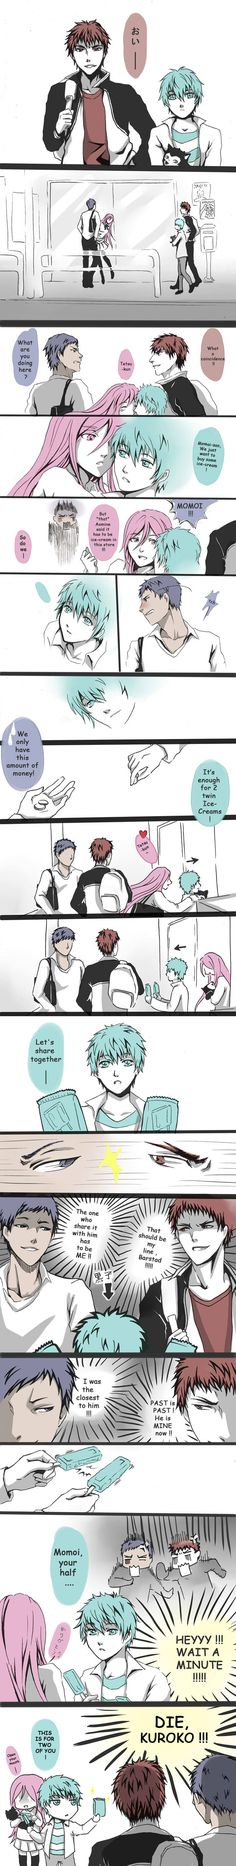 FRIENDZONED. Ice cream style~ Kuroko secretly supports AoKaga.